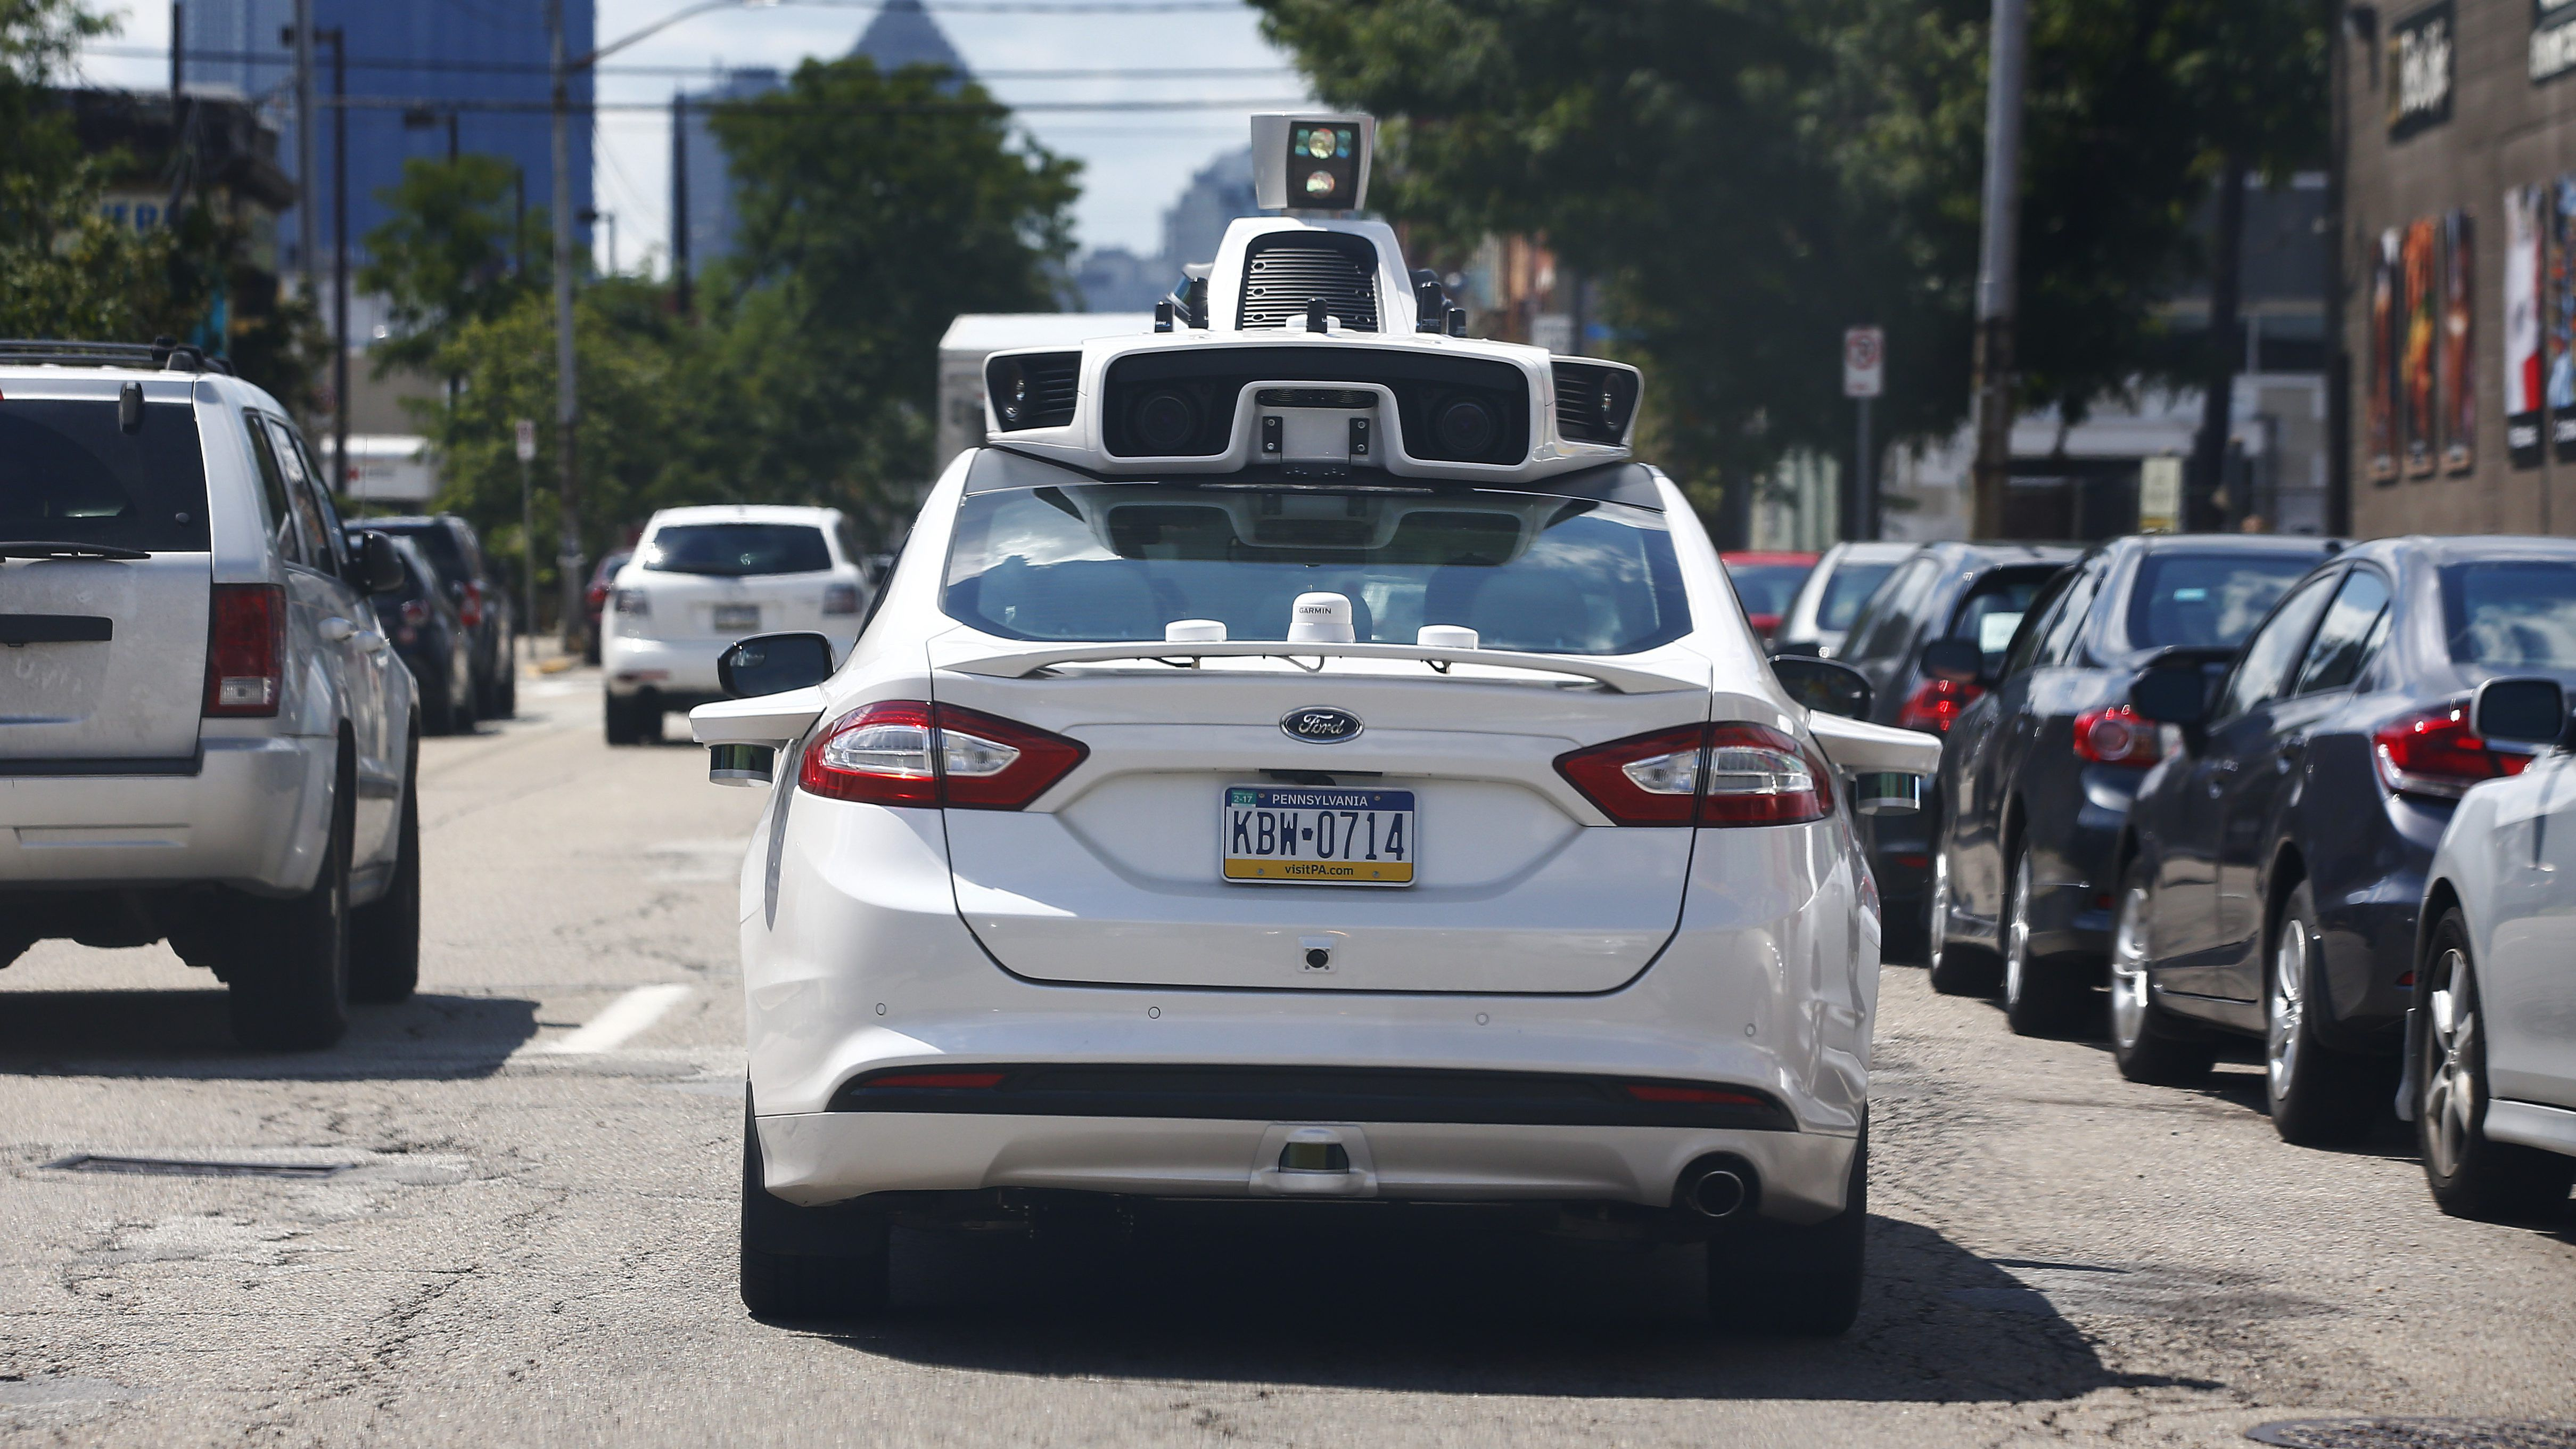 Self-driving cars scare many people, but psychologists have a ...